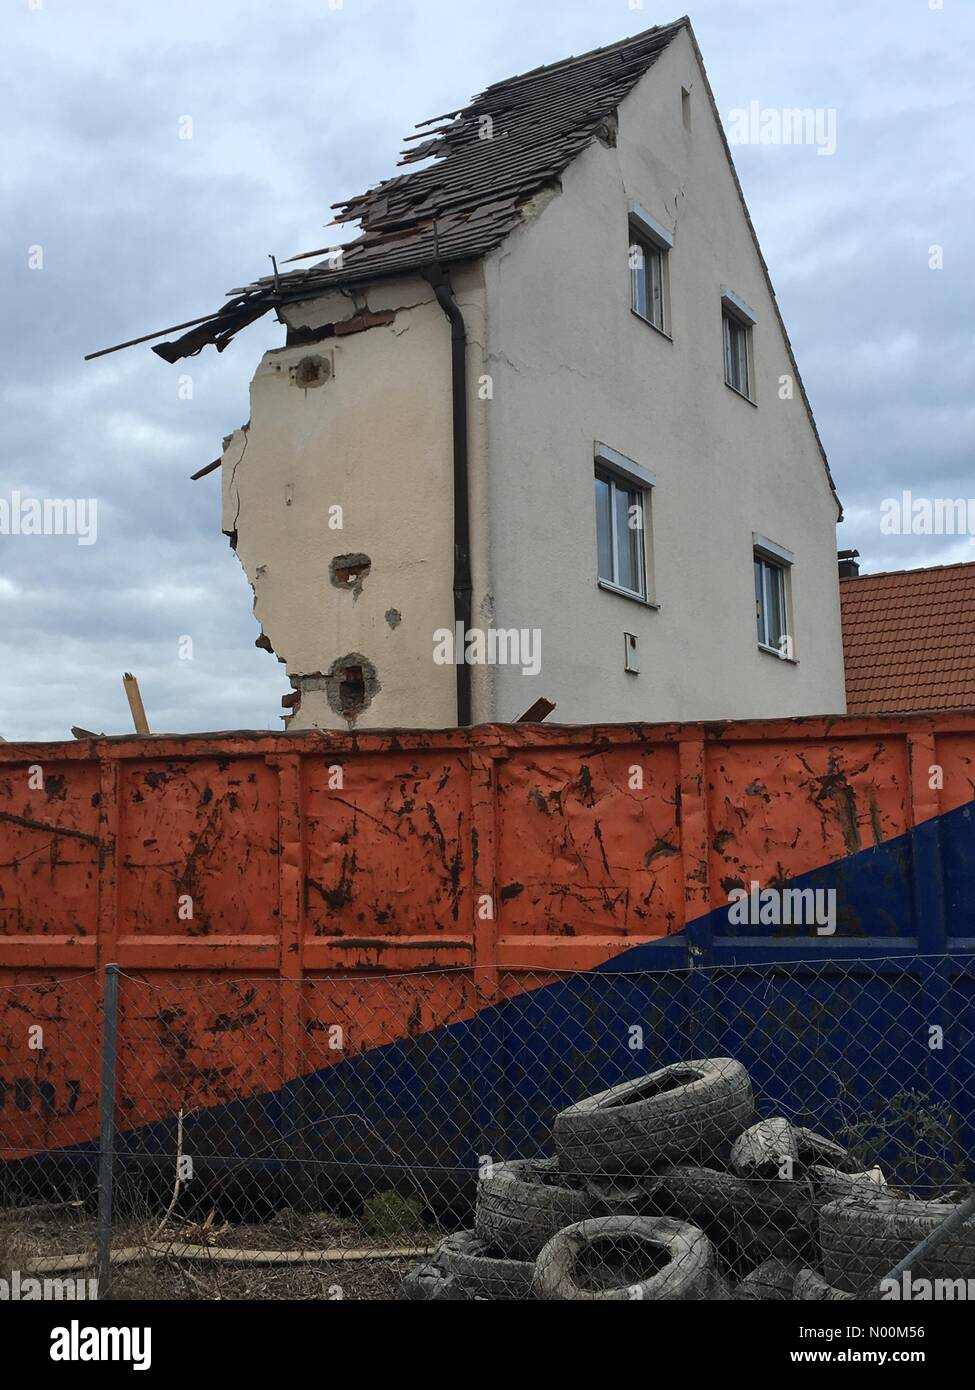 A half demolished family home in construction site, urban district Hadern, Munich, upper Bavaria, Germany, Europe - Stock Image